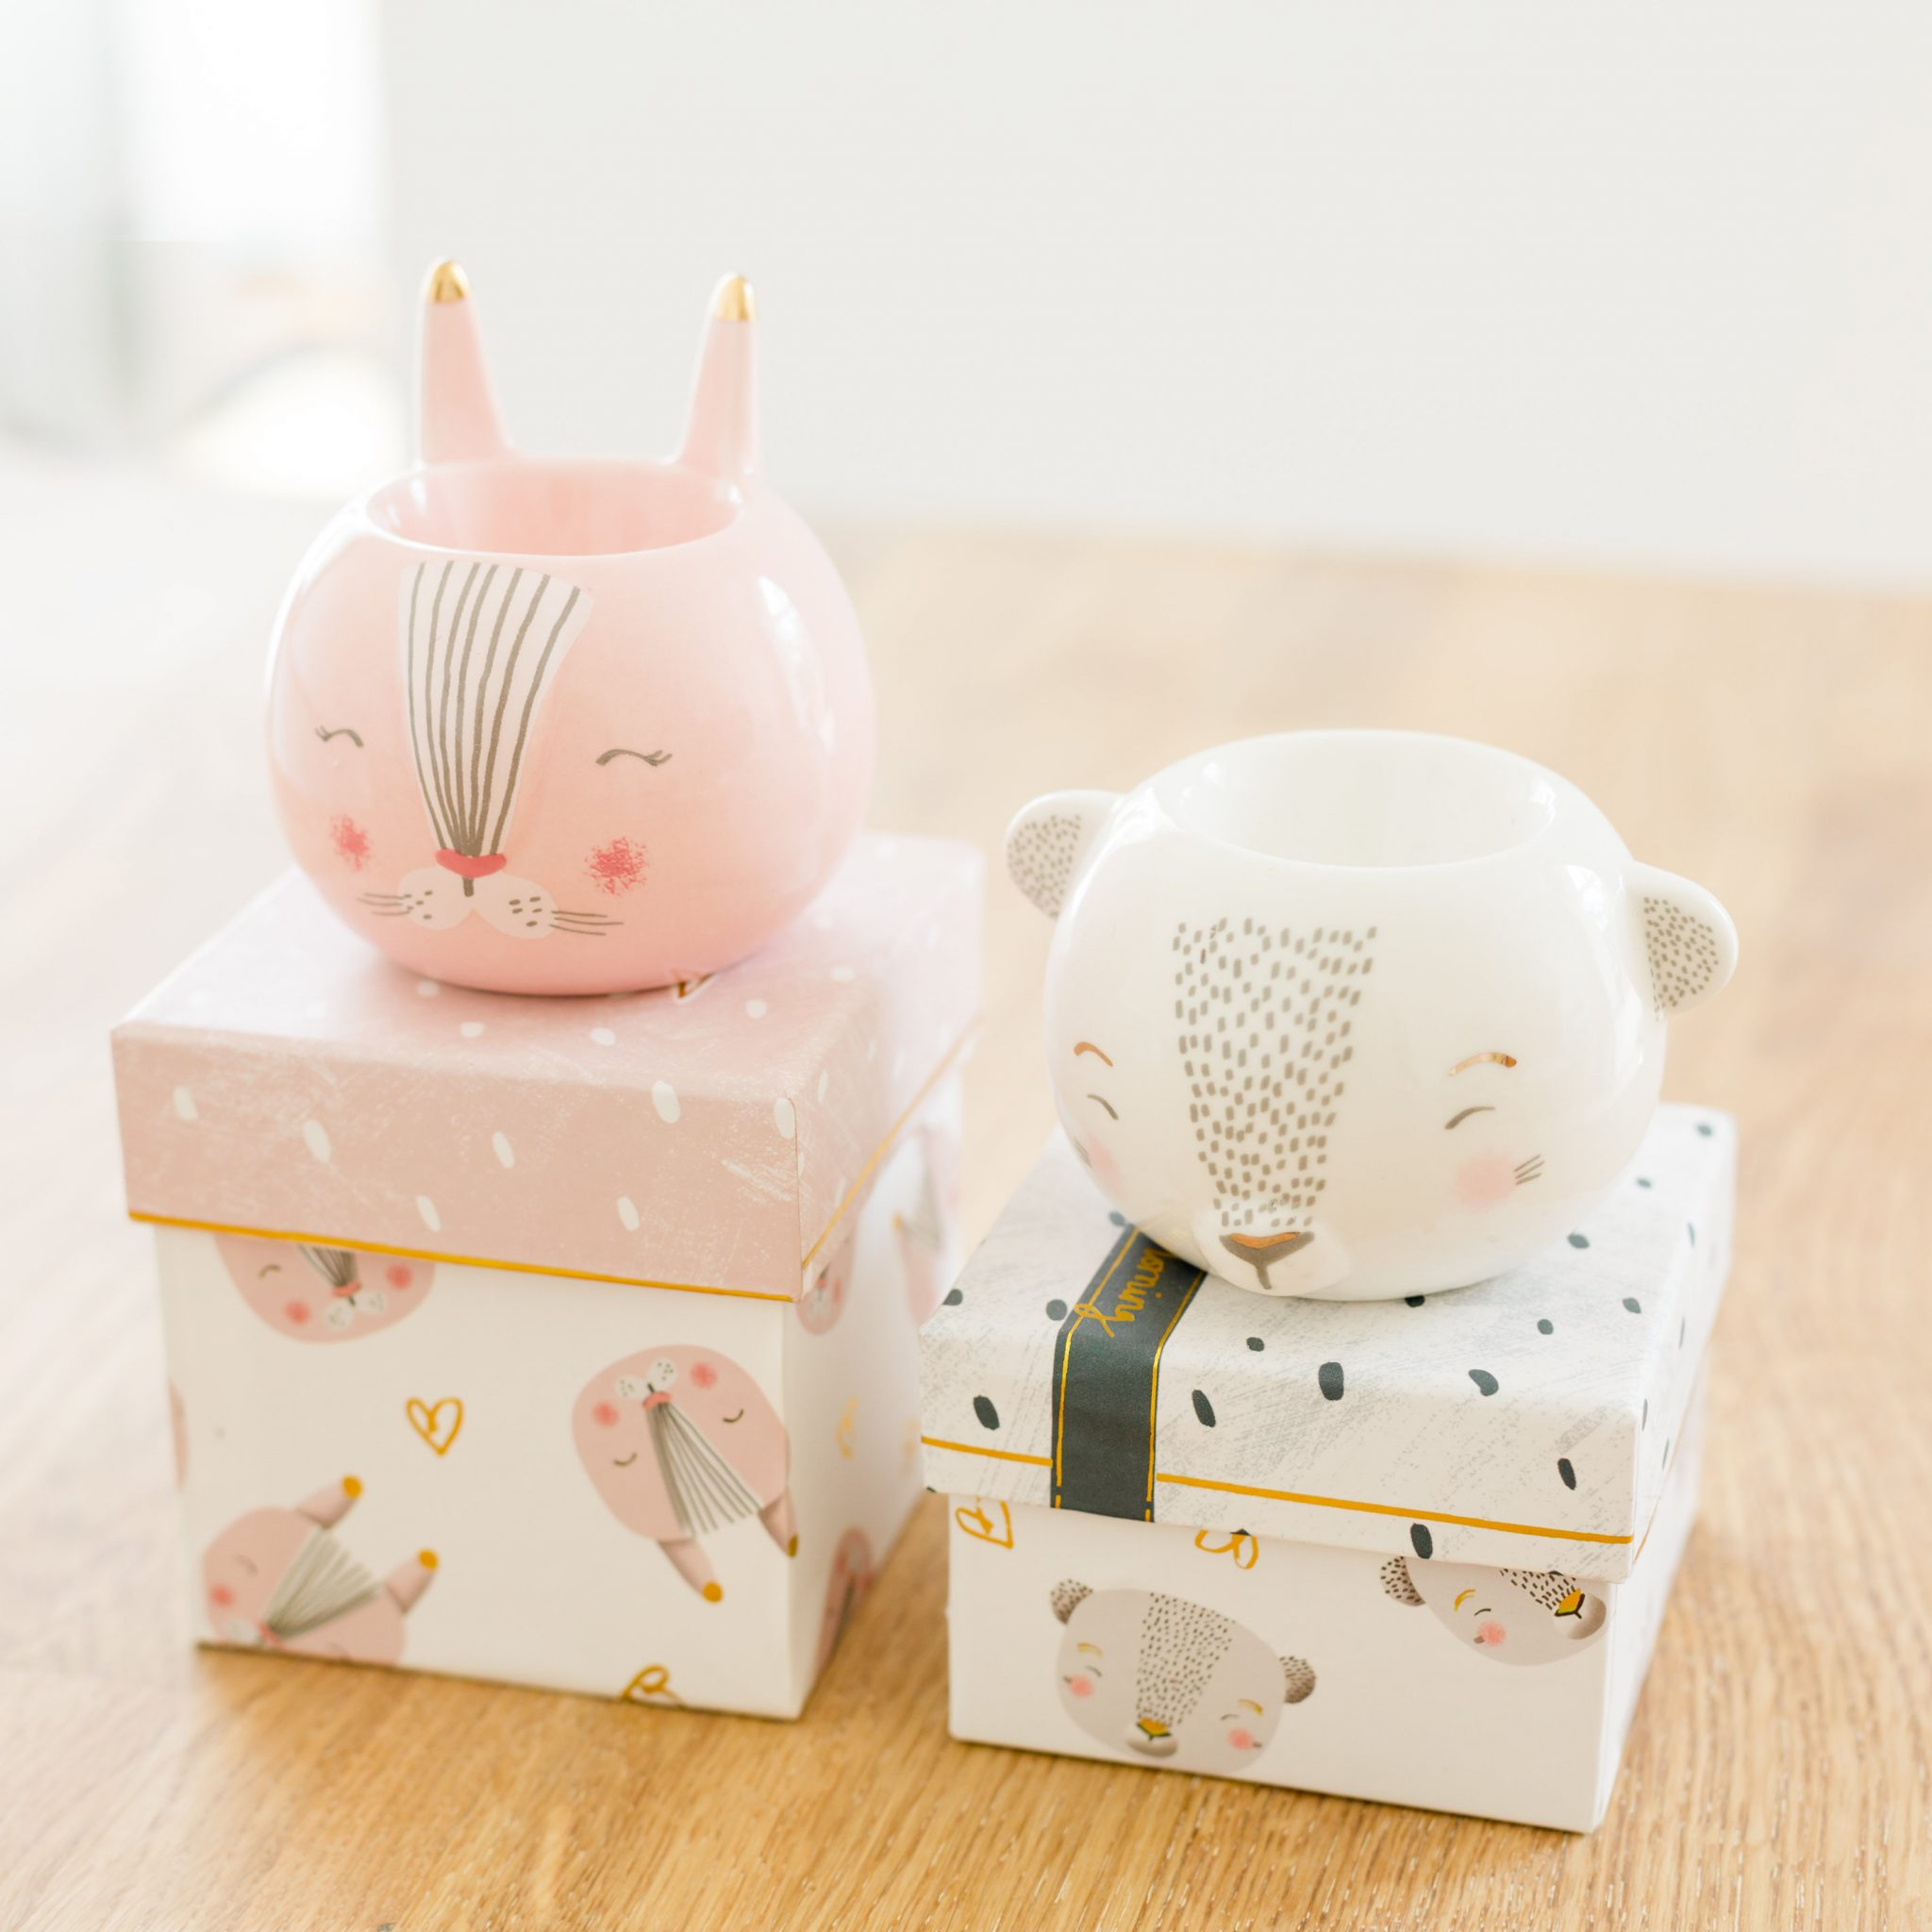 Bunny Amp Bear Egg Cup Assortment With Gift Box Love